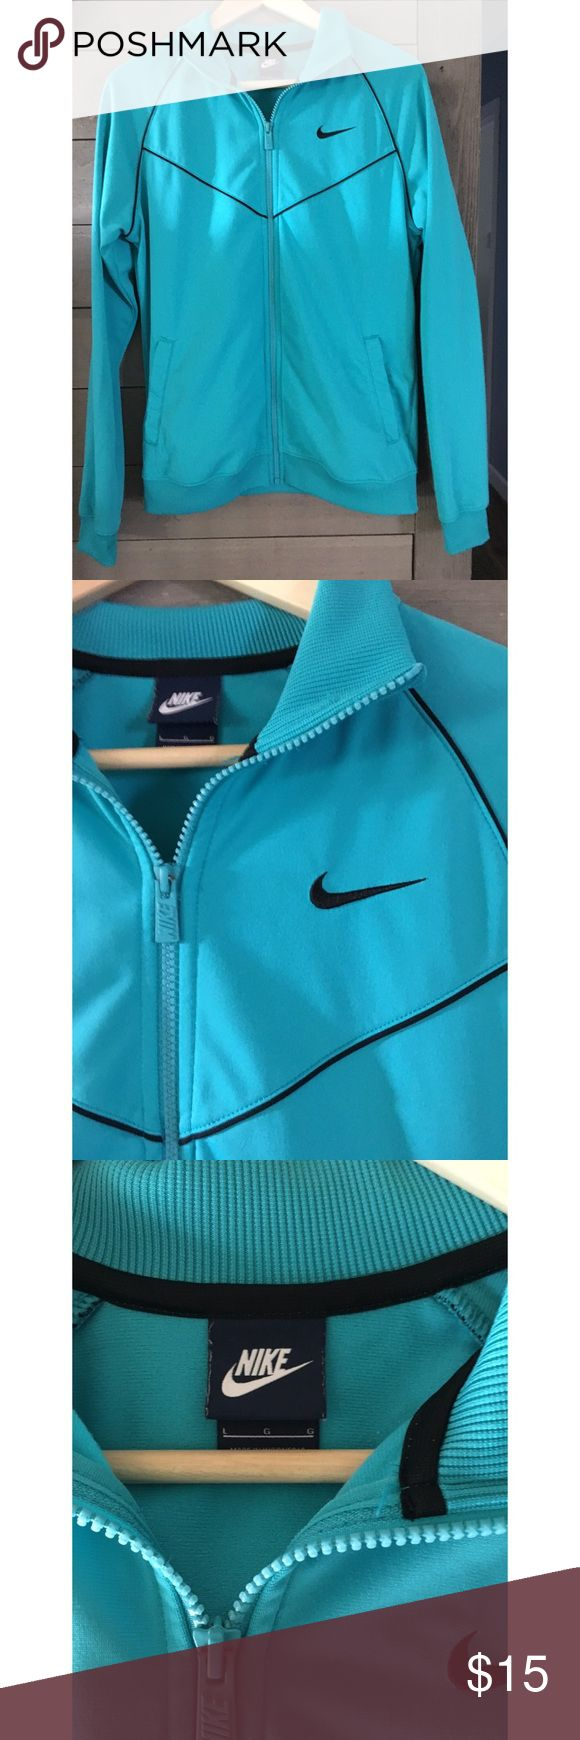 "Blue Nike Zip Up. Size Large Blue Nike Zip Up. Size Large. Excellent Condition. Armpit To Armpit 21"". Length 26 1/2. Offers Welcomed. No Trades. Smoke Free Home. Bundle Bundle Bundle For Savings!!! Nike Jackets & Coats"